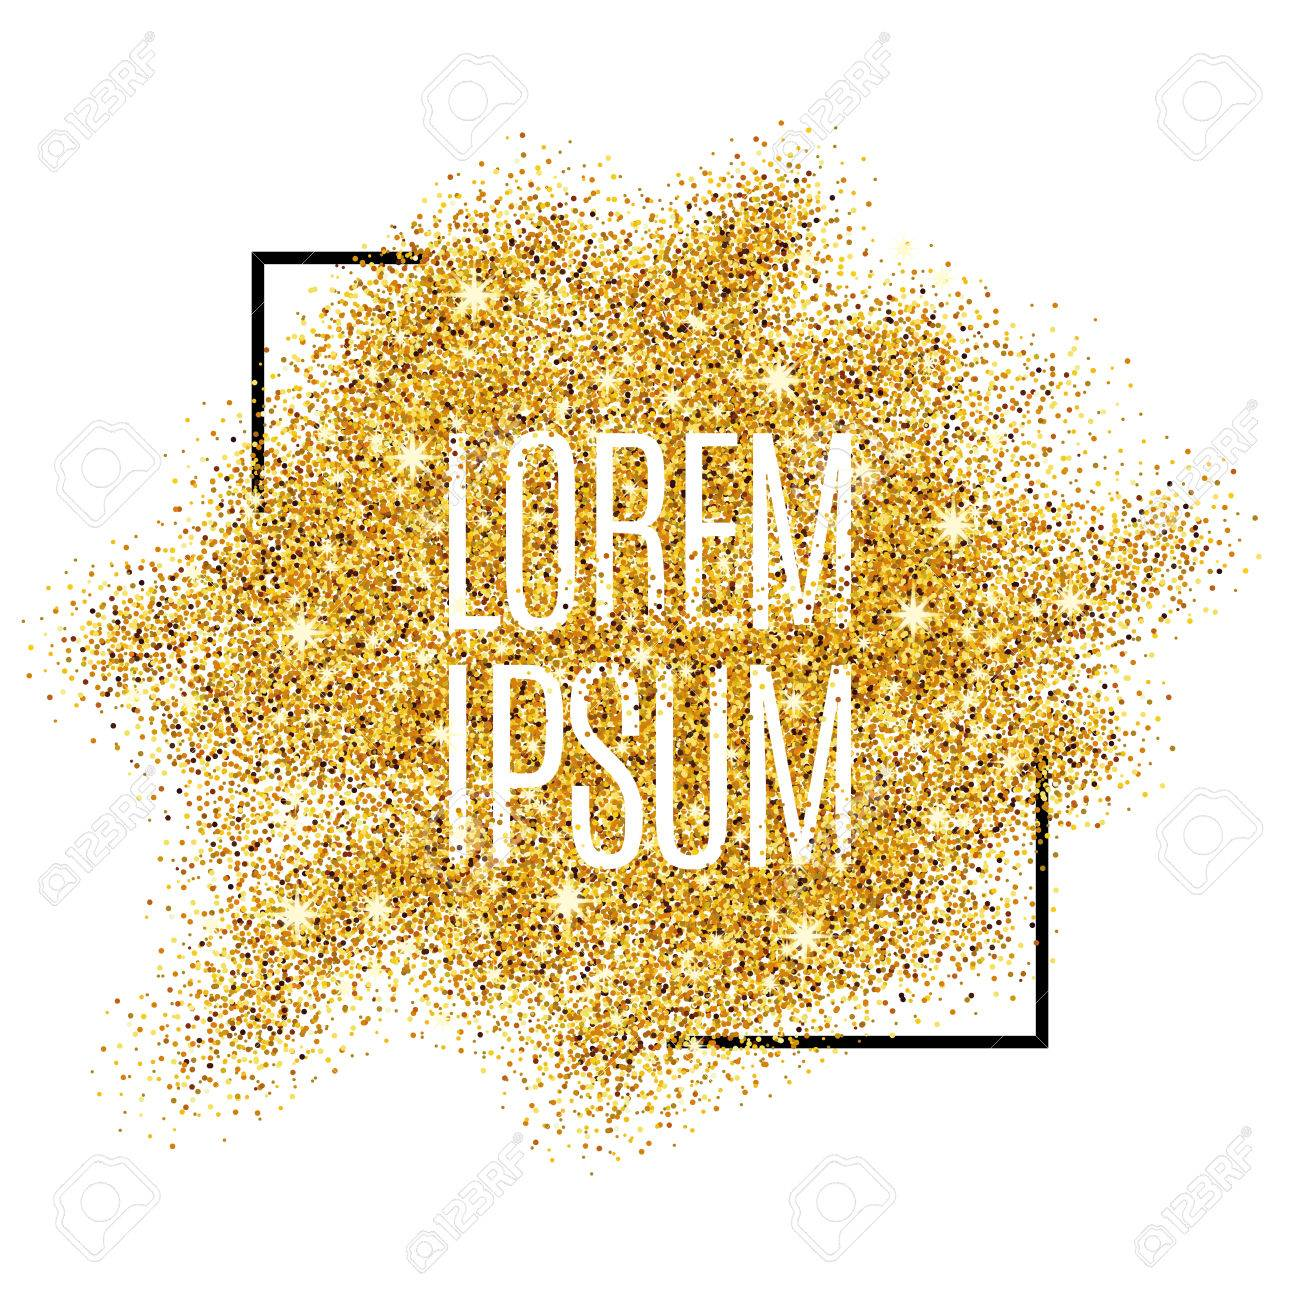 Gold background for poster, shopping, for sale sign, discount, marketing, selling, web, header. Abstract golden background for text, type, quote. Gold blur background - 52579335